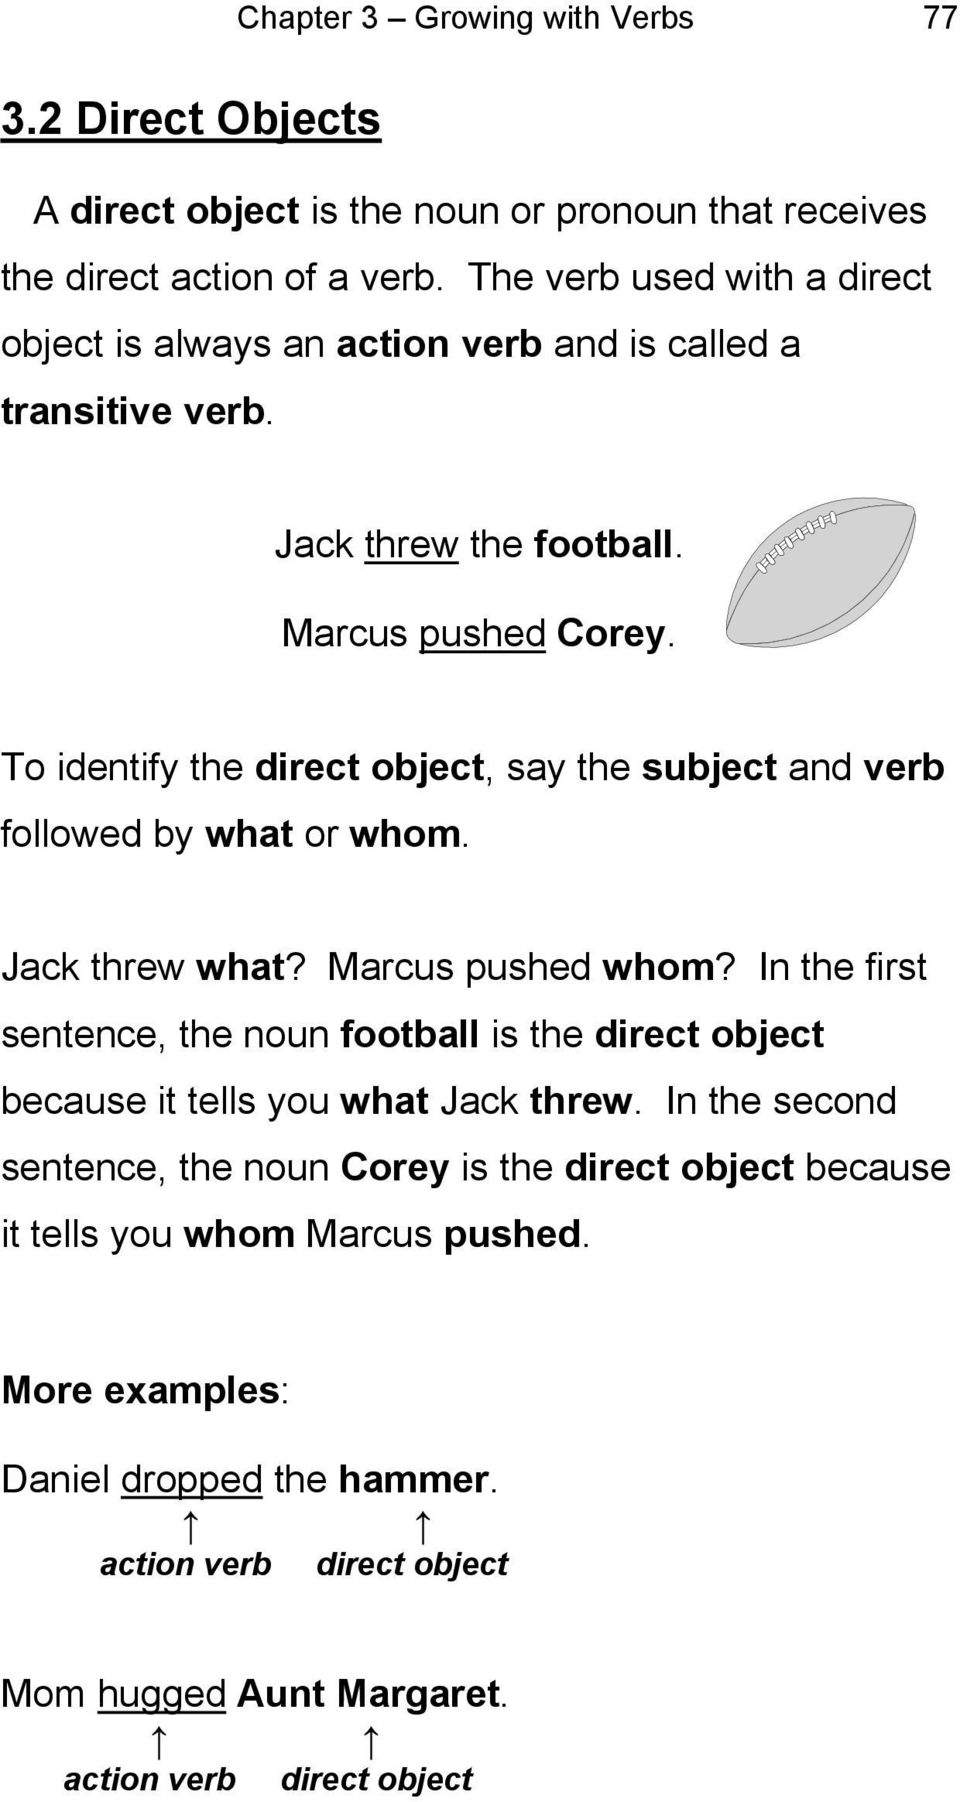 To identify the direct object, say the subject and verb followed by what or whom. Jack threw what? Marcus pushed whom?